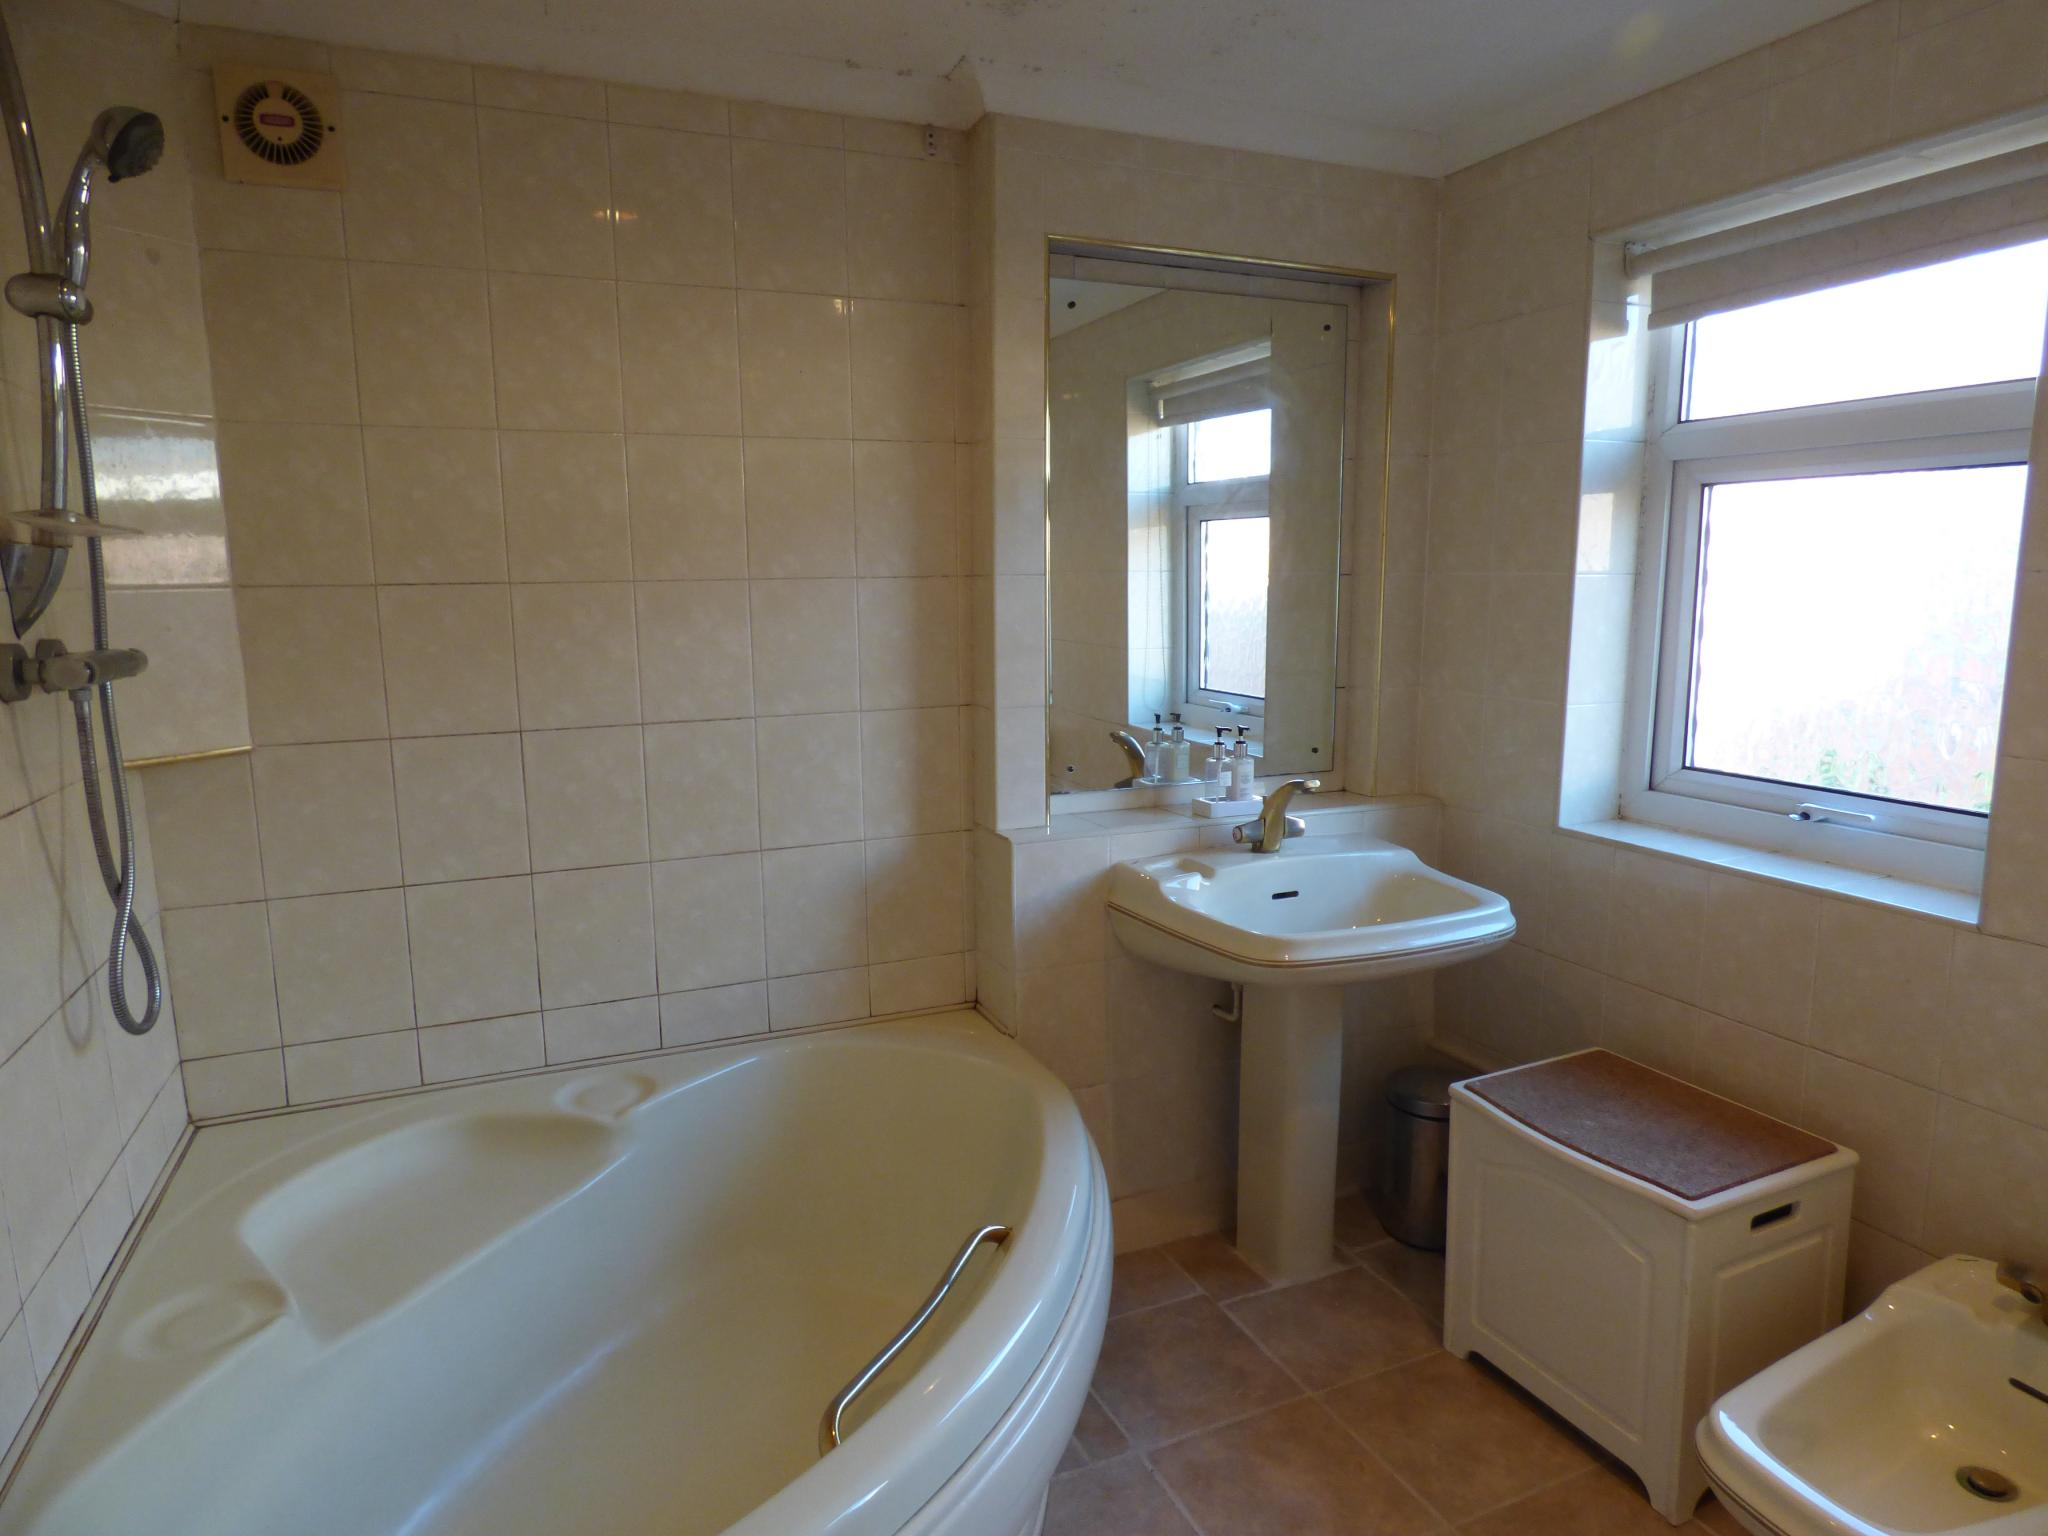 3 Bedroom Semi-detached House For Sale - Photograph 12